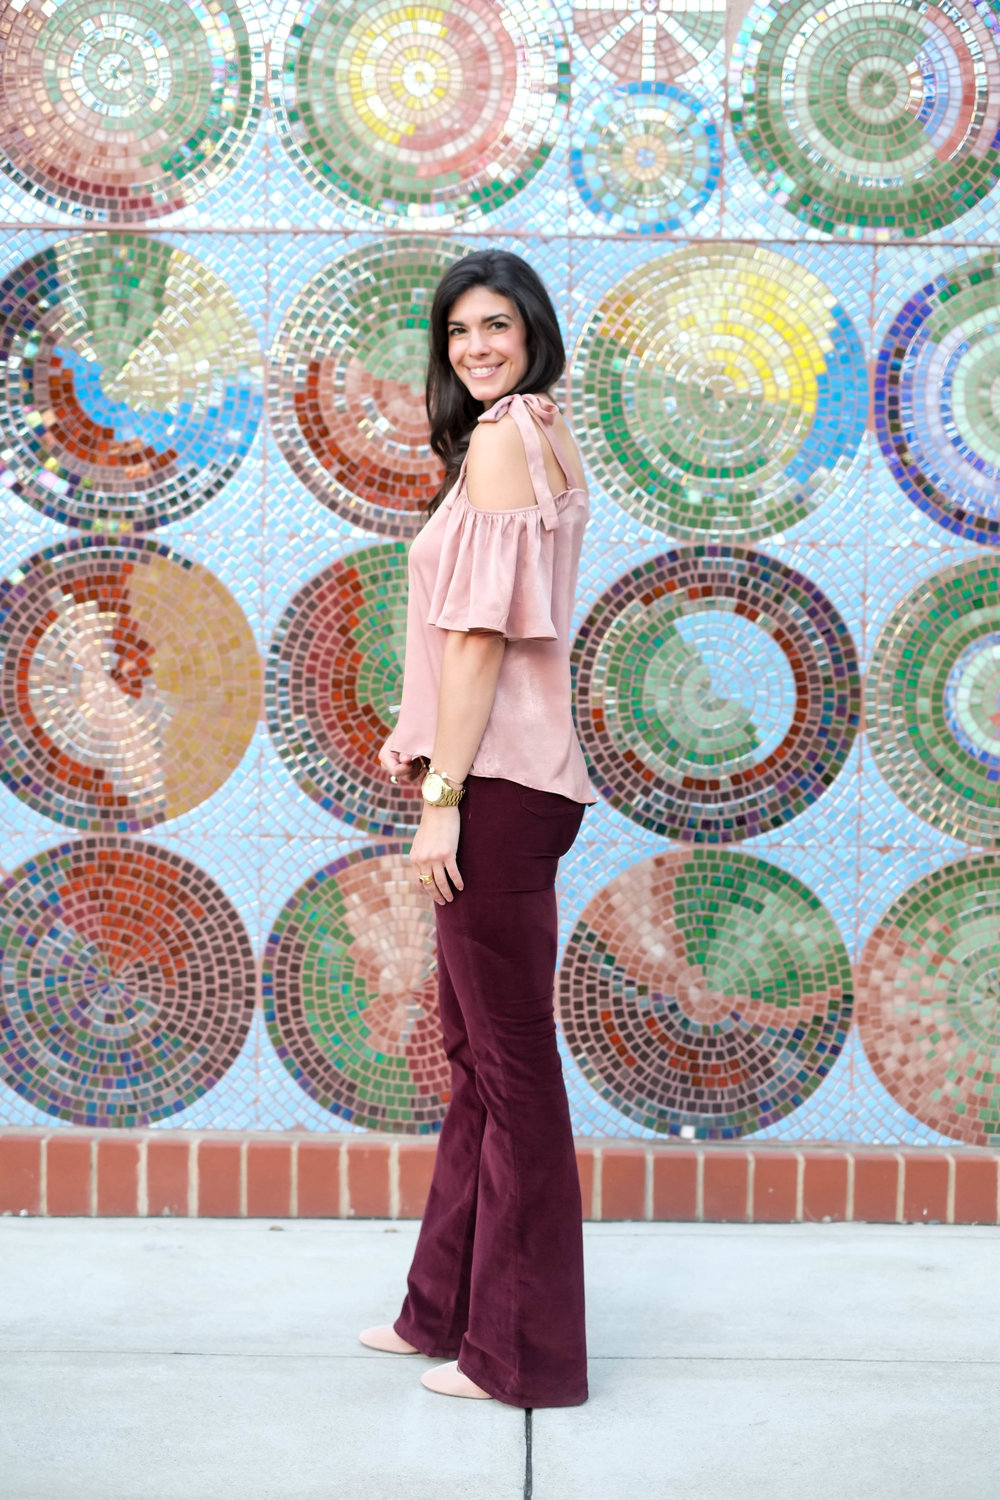 velvet-burgandy-flared-pants-fall-fashion-lauren-schwaiger.jpg